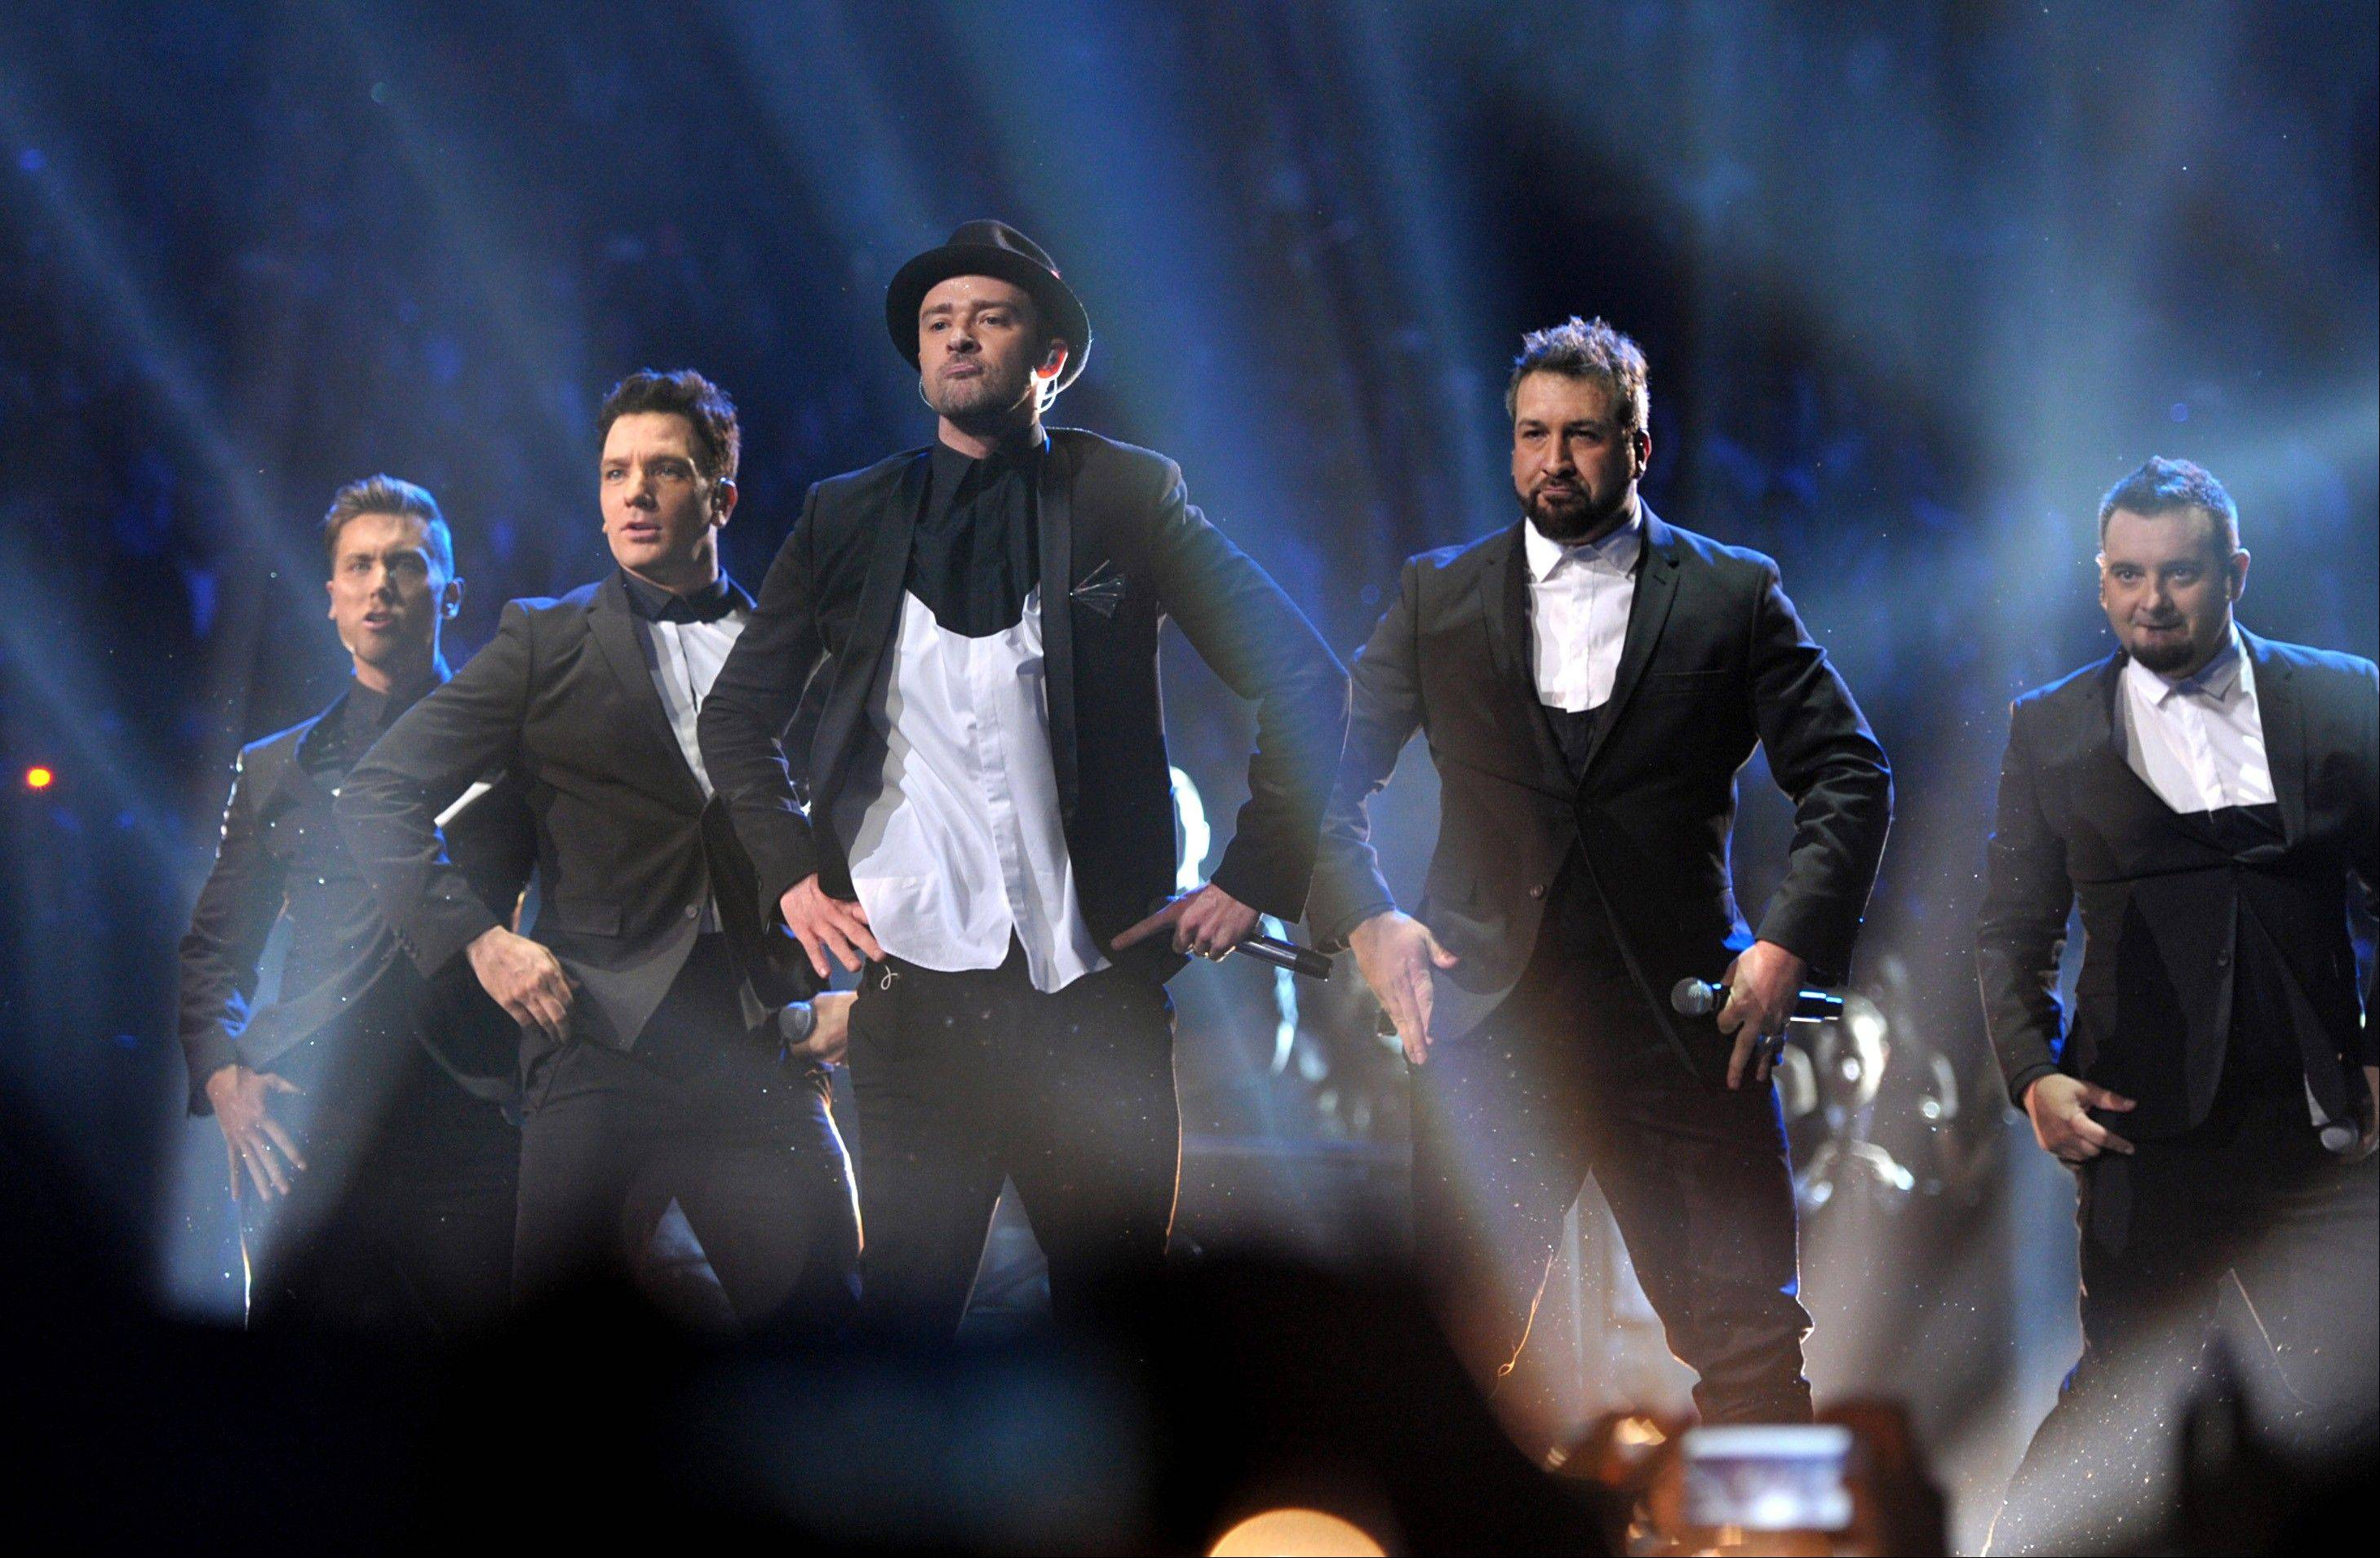 This image released by MTV shows, from left, Lance Bass, JC Chasez, Justin Timberlake, Joey Fatone and Chris Kirkpatrick, of 'N Sync, during a performance at the MTV Video Music Awards at Barclays Center on Sunday in the Brooklyn borough of New York.